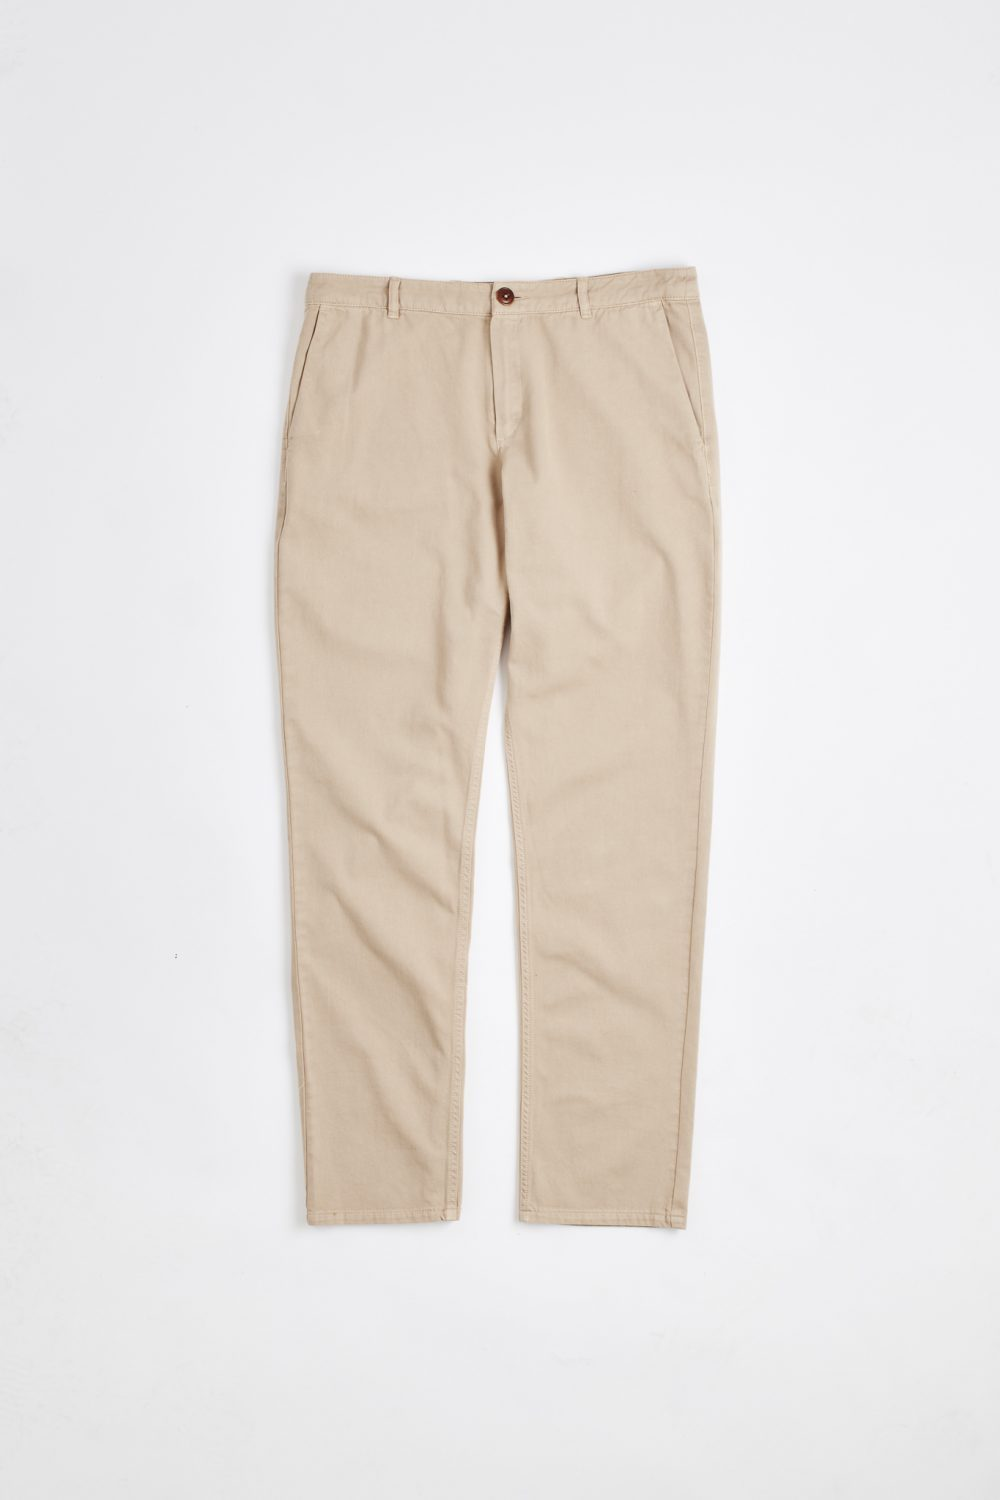 A-Kind-of-Guise-Permanents-Trousers-Washed-Camel